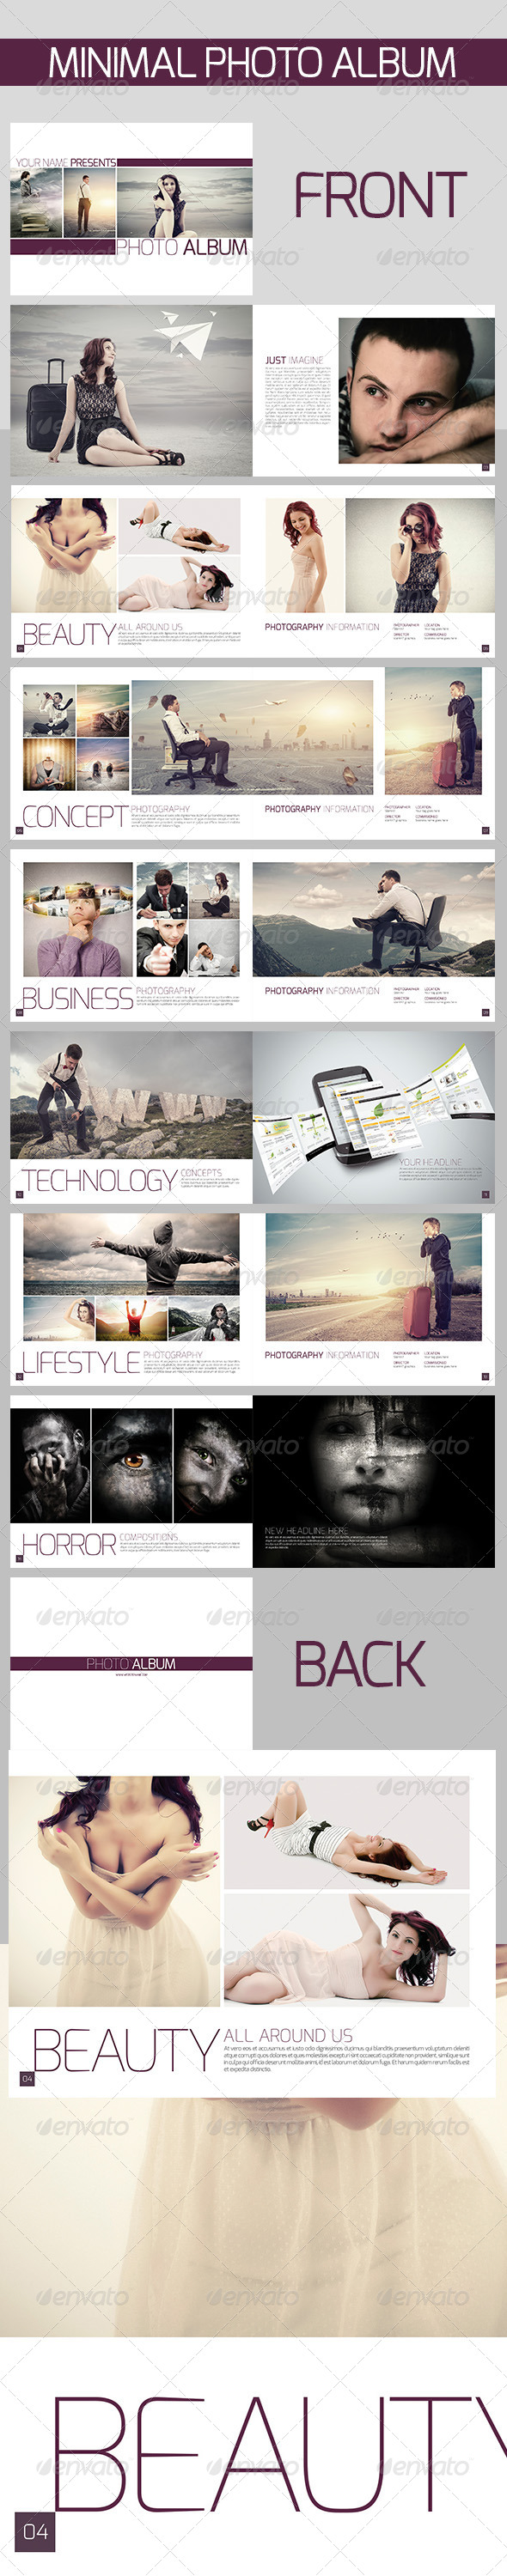 GraphicRiver Minimal Photo Album 6485986